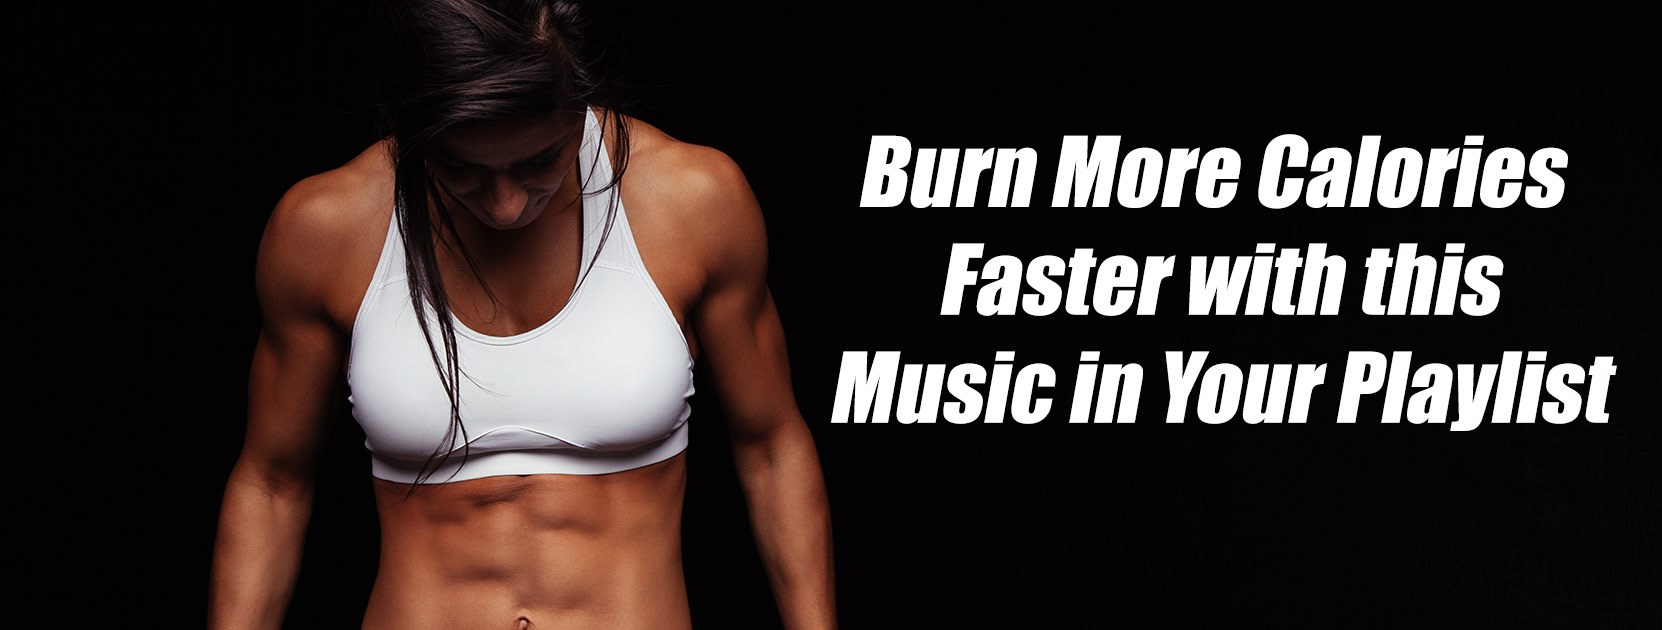 Burn More Calories Faster with This Music in your Playlist